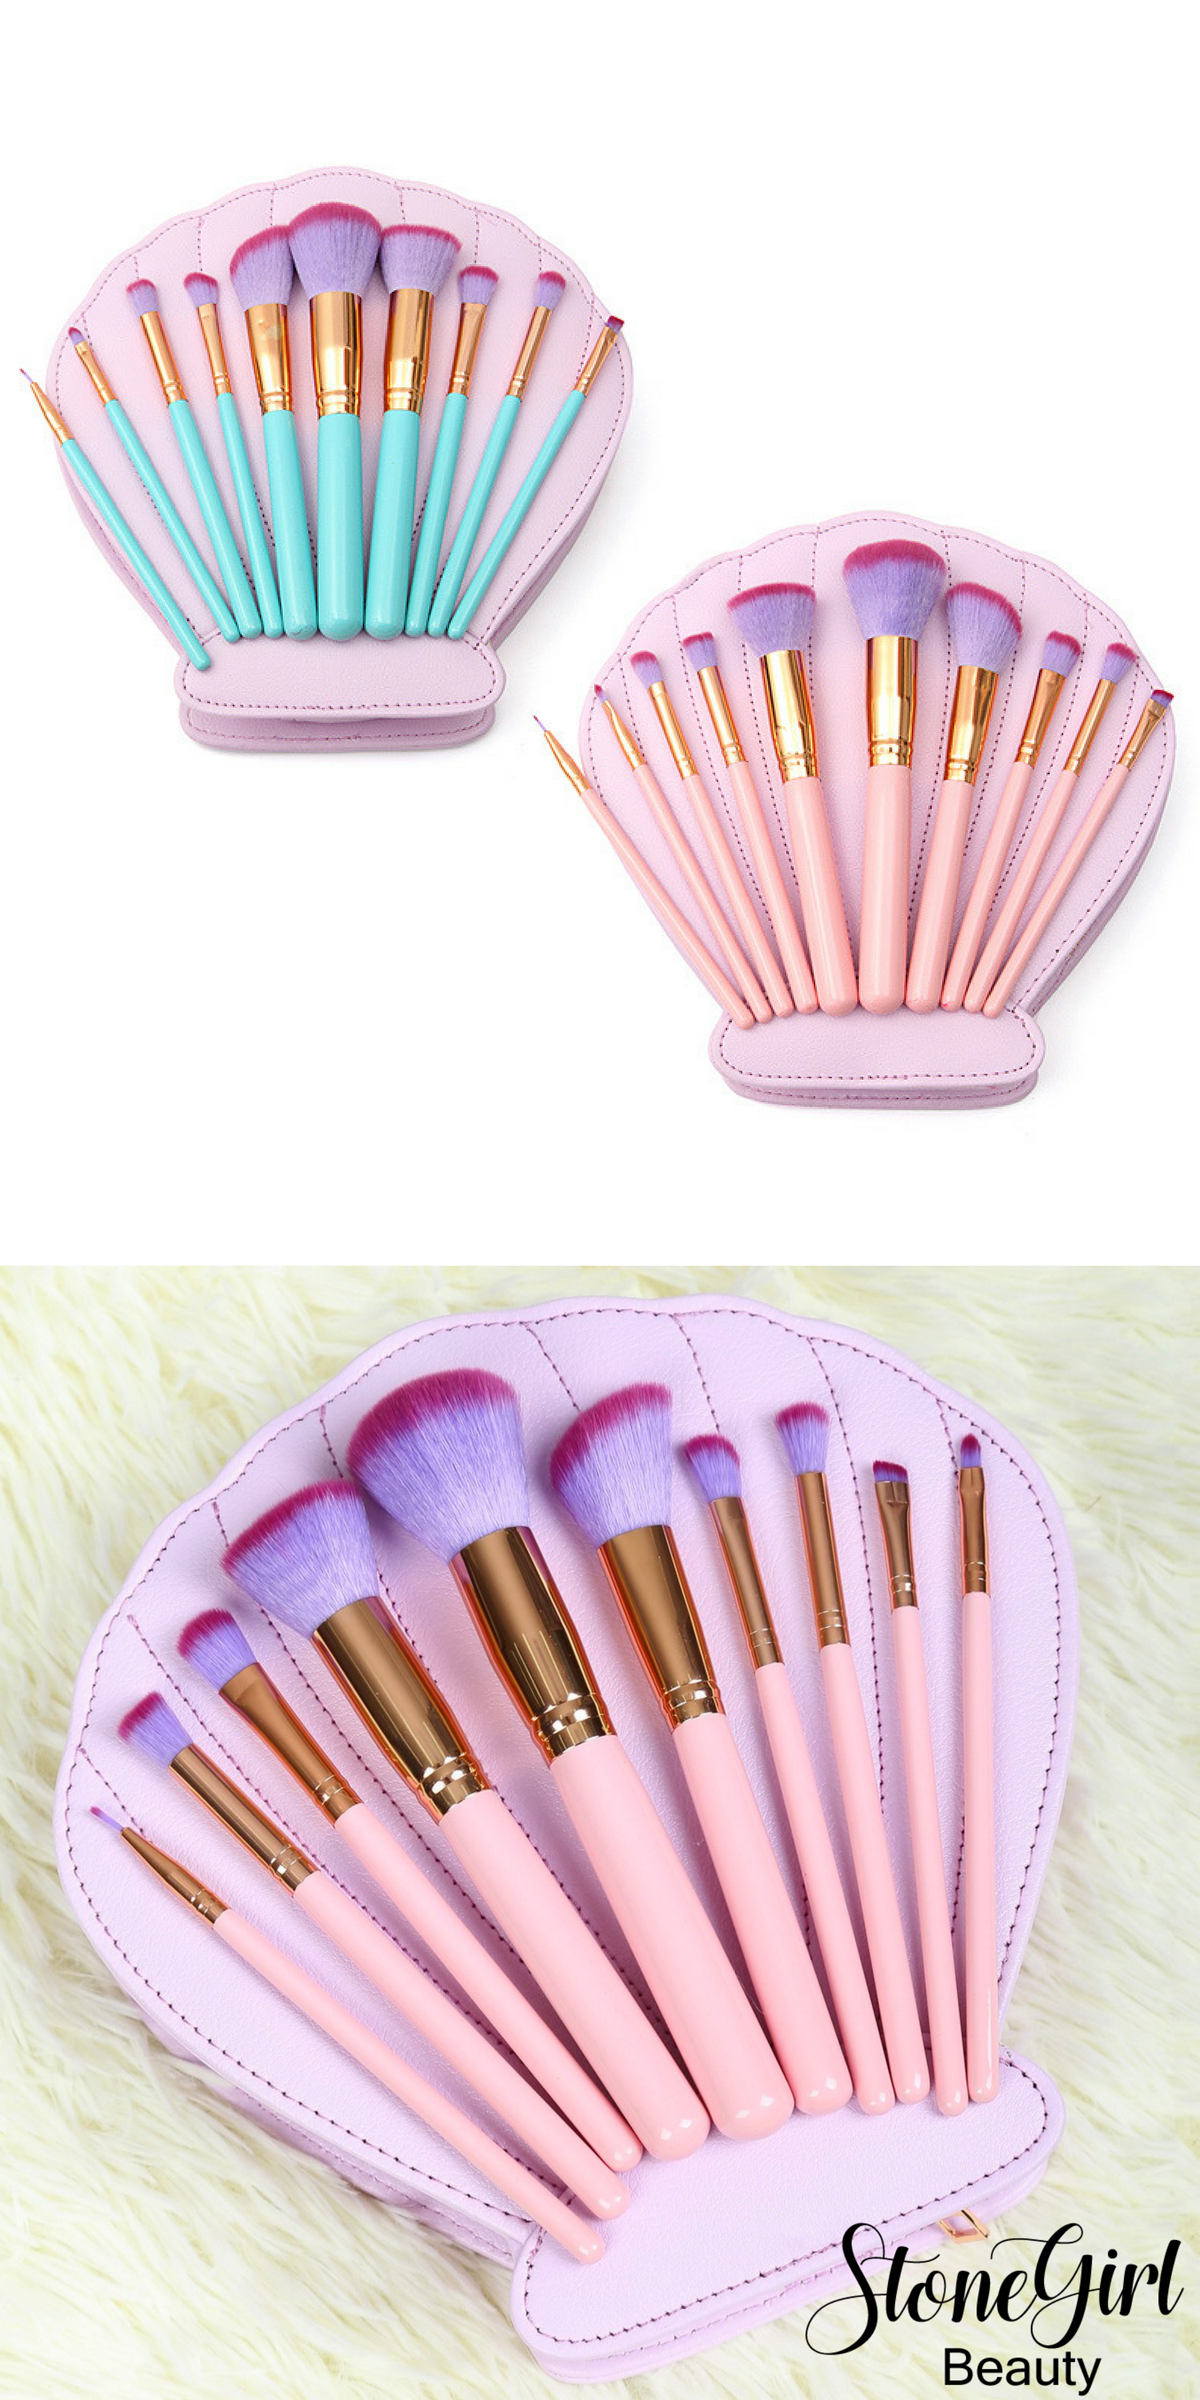 This Makeup Brush Set Includes 10 Gorgeous Brushes In A Pale Pink Or Turquoise Color Handle With A Rose Gold Accent Makeup Brushes Makeup Brush Set Cute Makeup